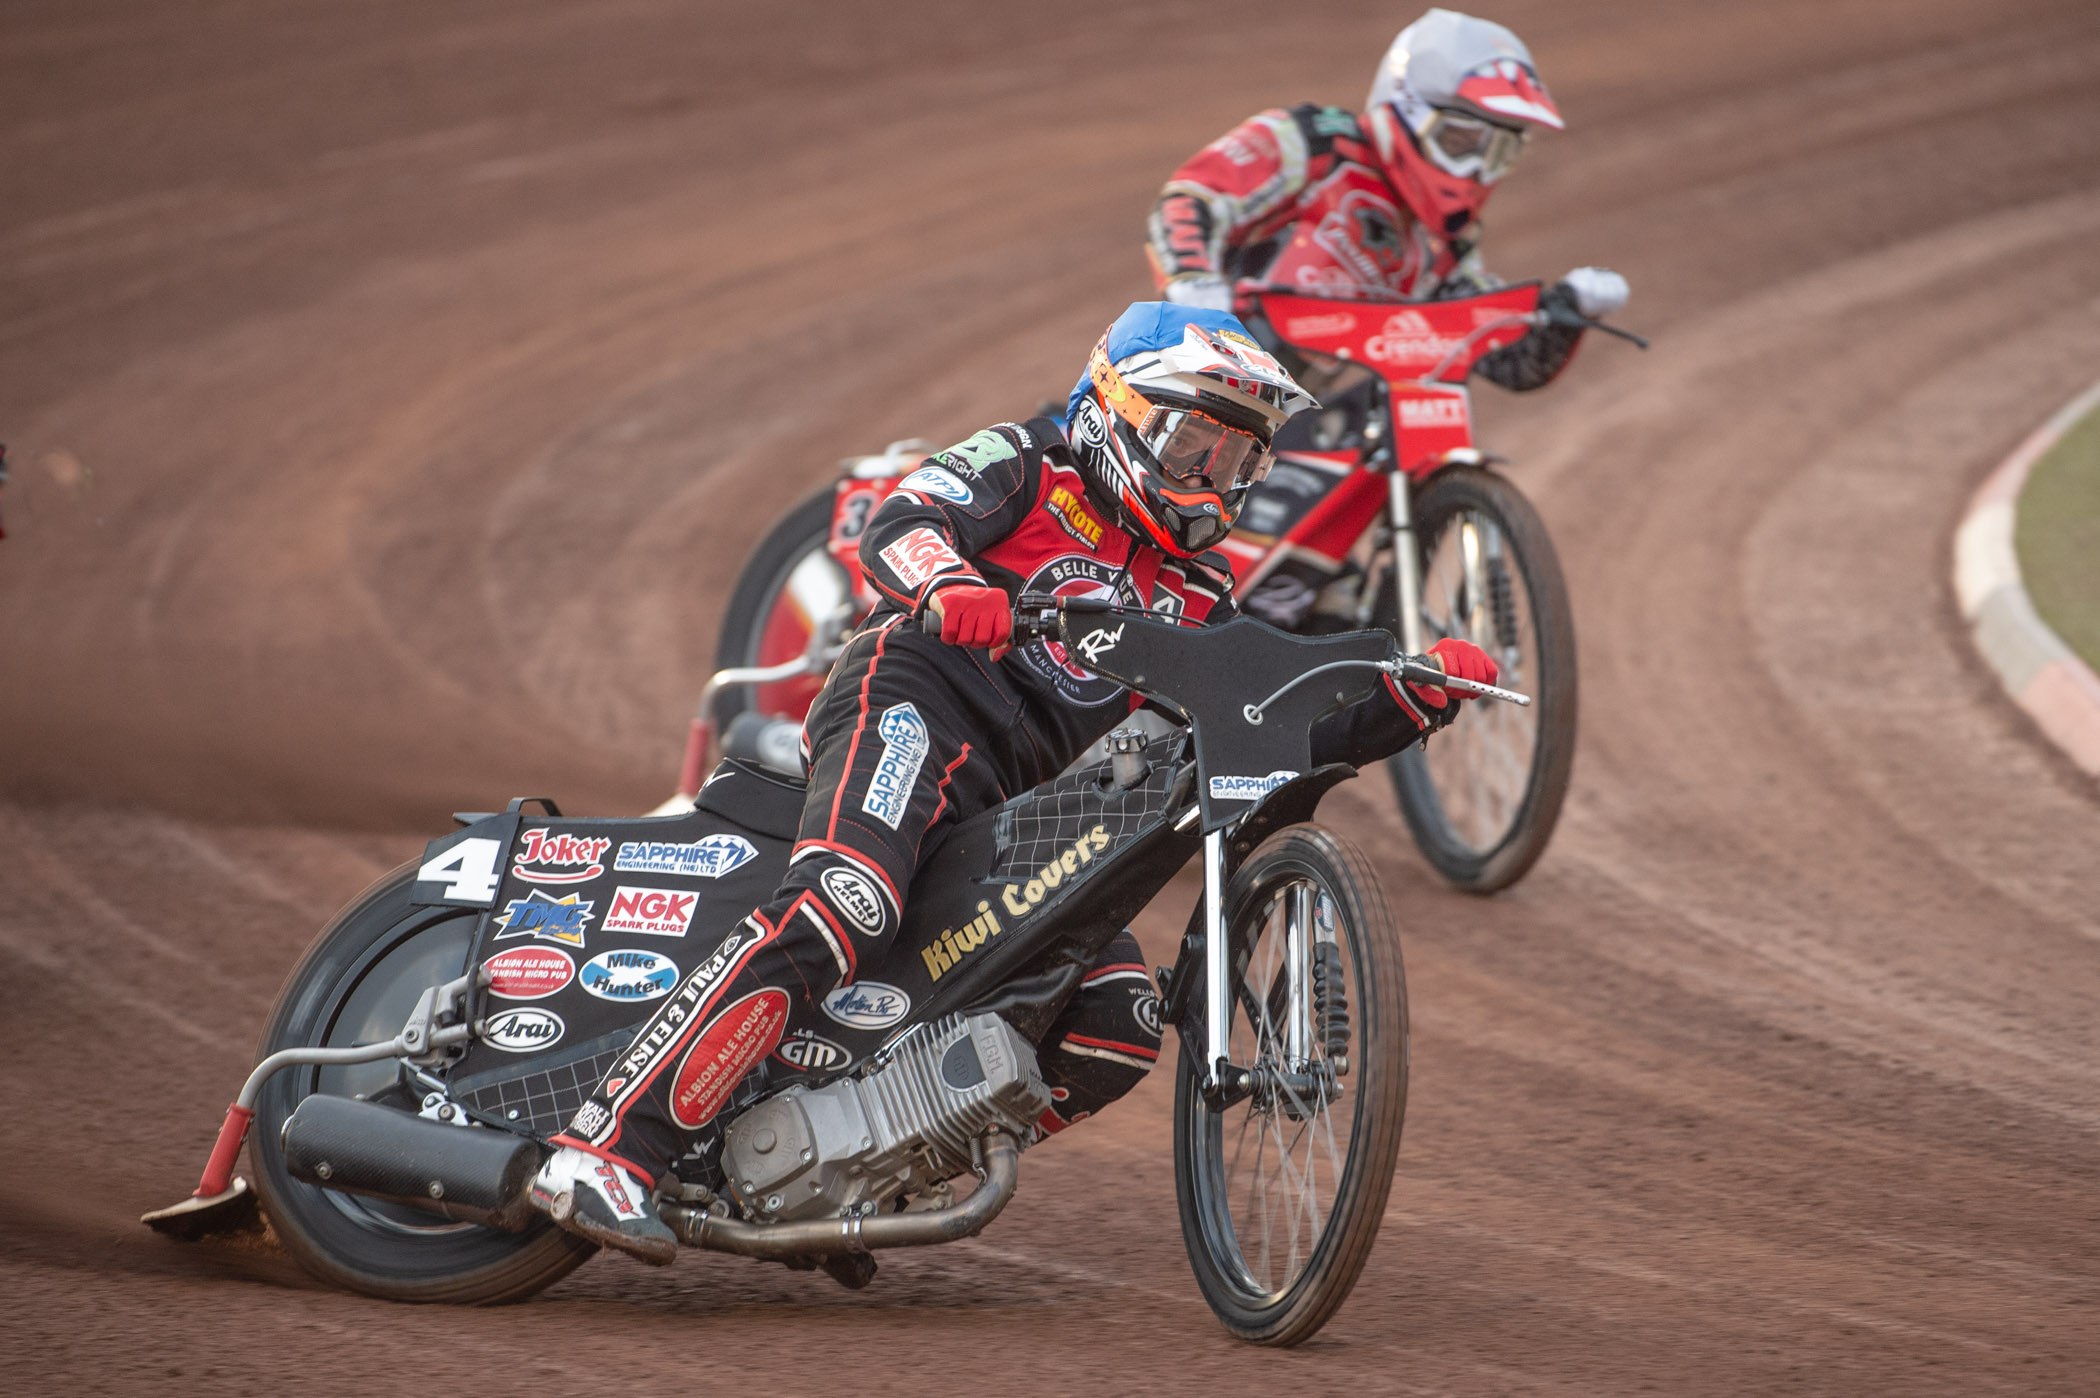 A vital first place for Ricky Wells levelled the score in Heat 3